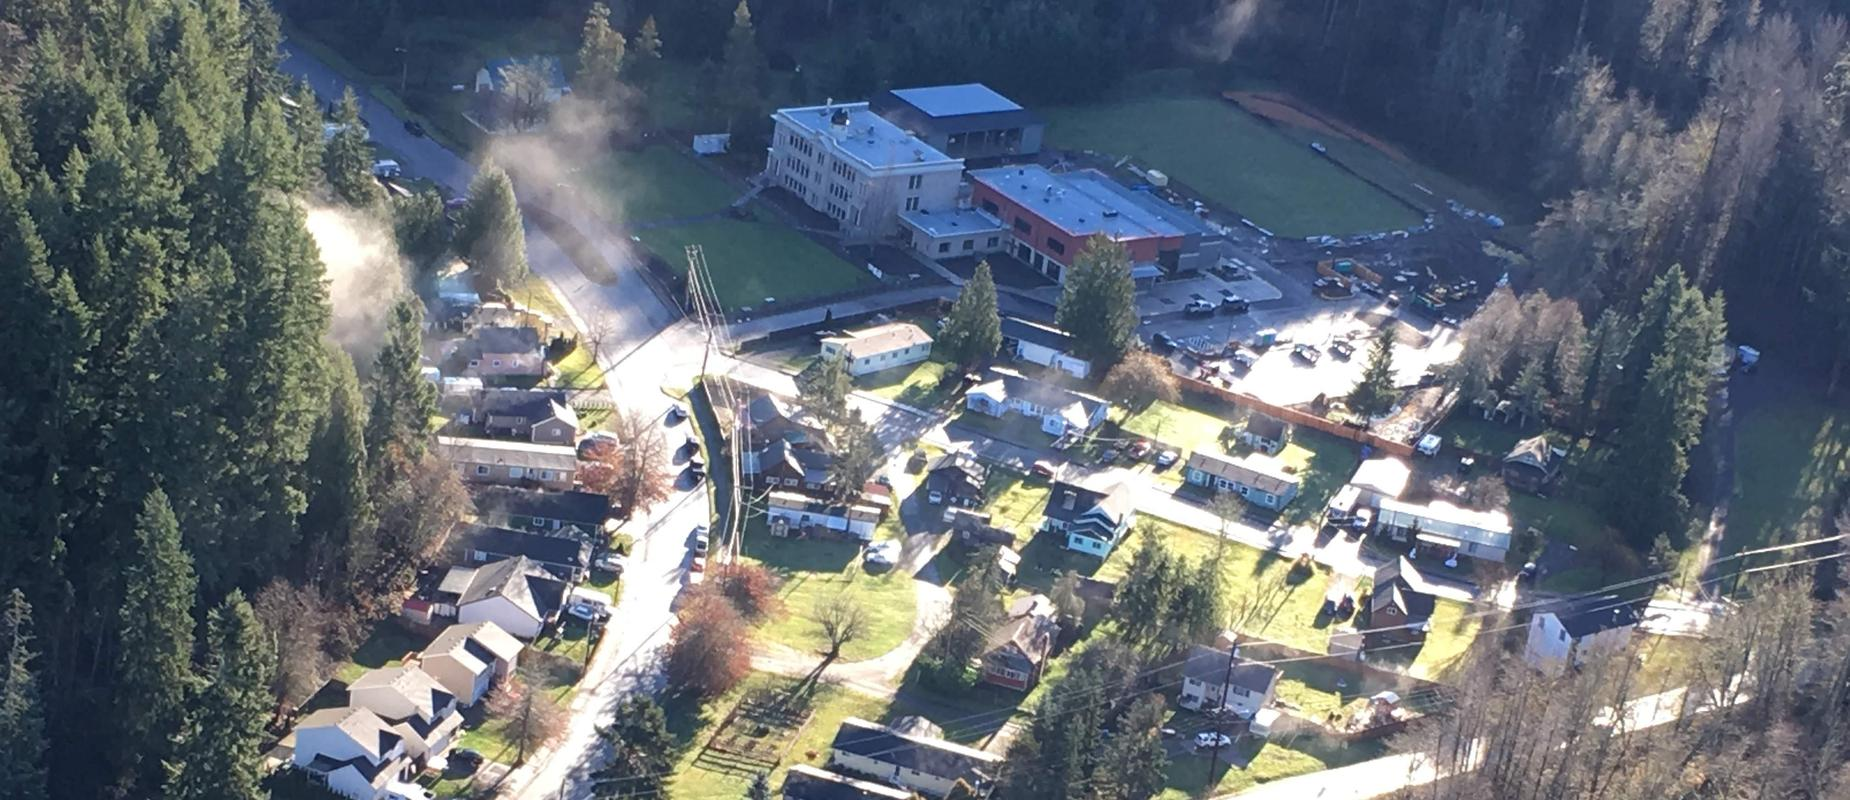 Ariel picture of Wilkeson Elementary